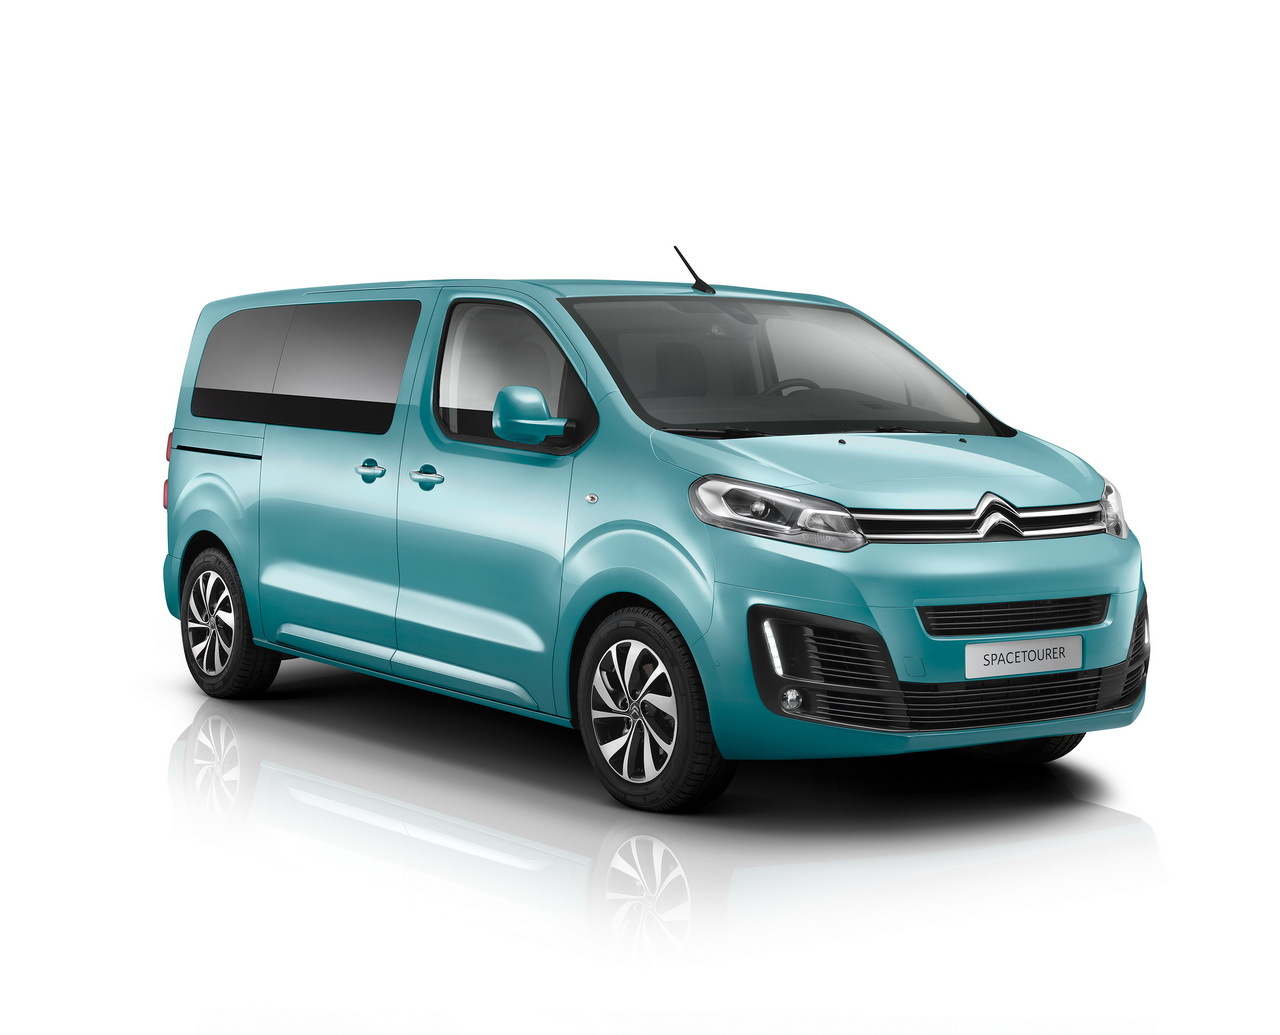 Citroen SpaceTourer 2016, imagini Citroen SpaceTourer 2016, date tehnice Citroen SpaceTourer 2016, motor blue hdi Citroen SpaceTourer 2016, 0-100 km/h Citroen SpaceTourer 2016, pret Citroen SpaceTourer 2016, lansare Citroen SpaceTourer 2016, test drive Citroen SpaceTourer 2016, dirve test Citroen SpaceTourer 2016, consum Citroen SpaceTourer 2016 2.0 blue hdi 180 cp, cutie automata Citroen SpaceTourer 2016